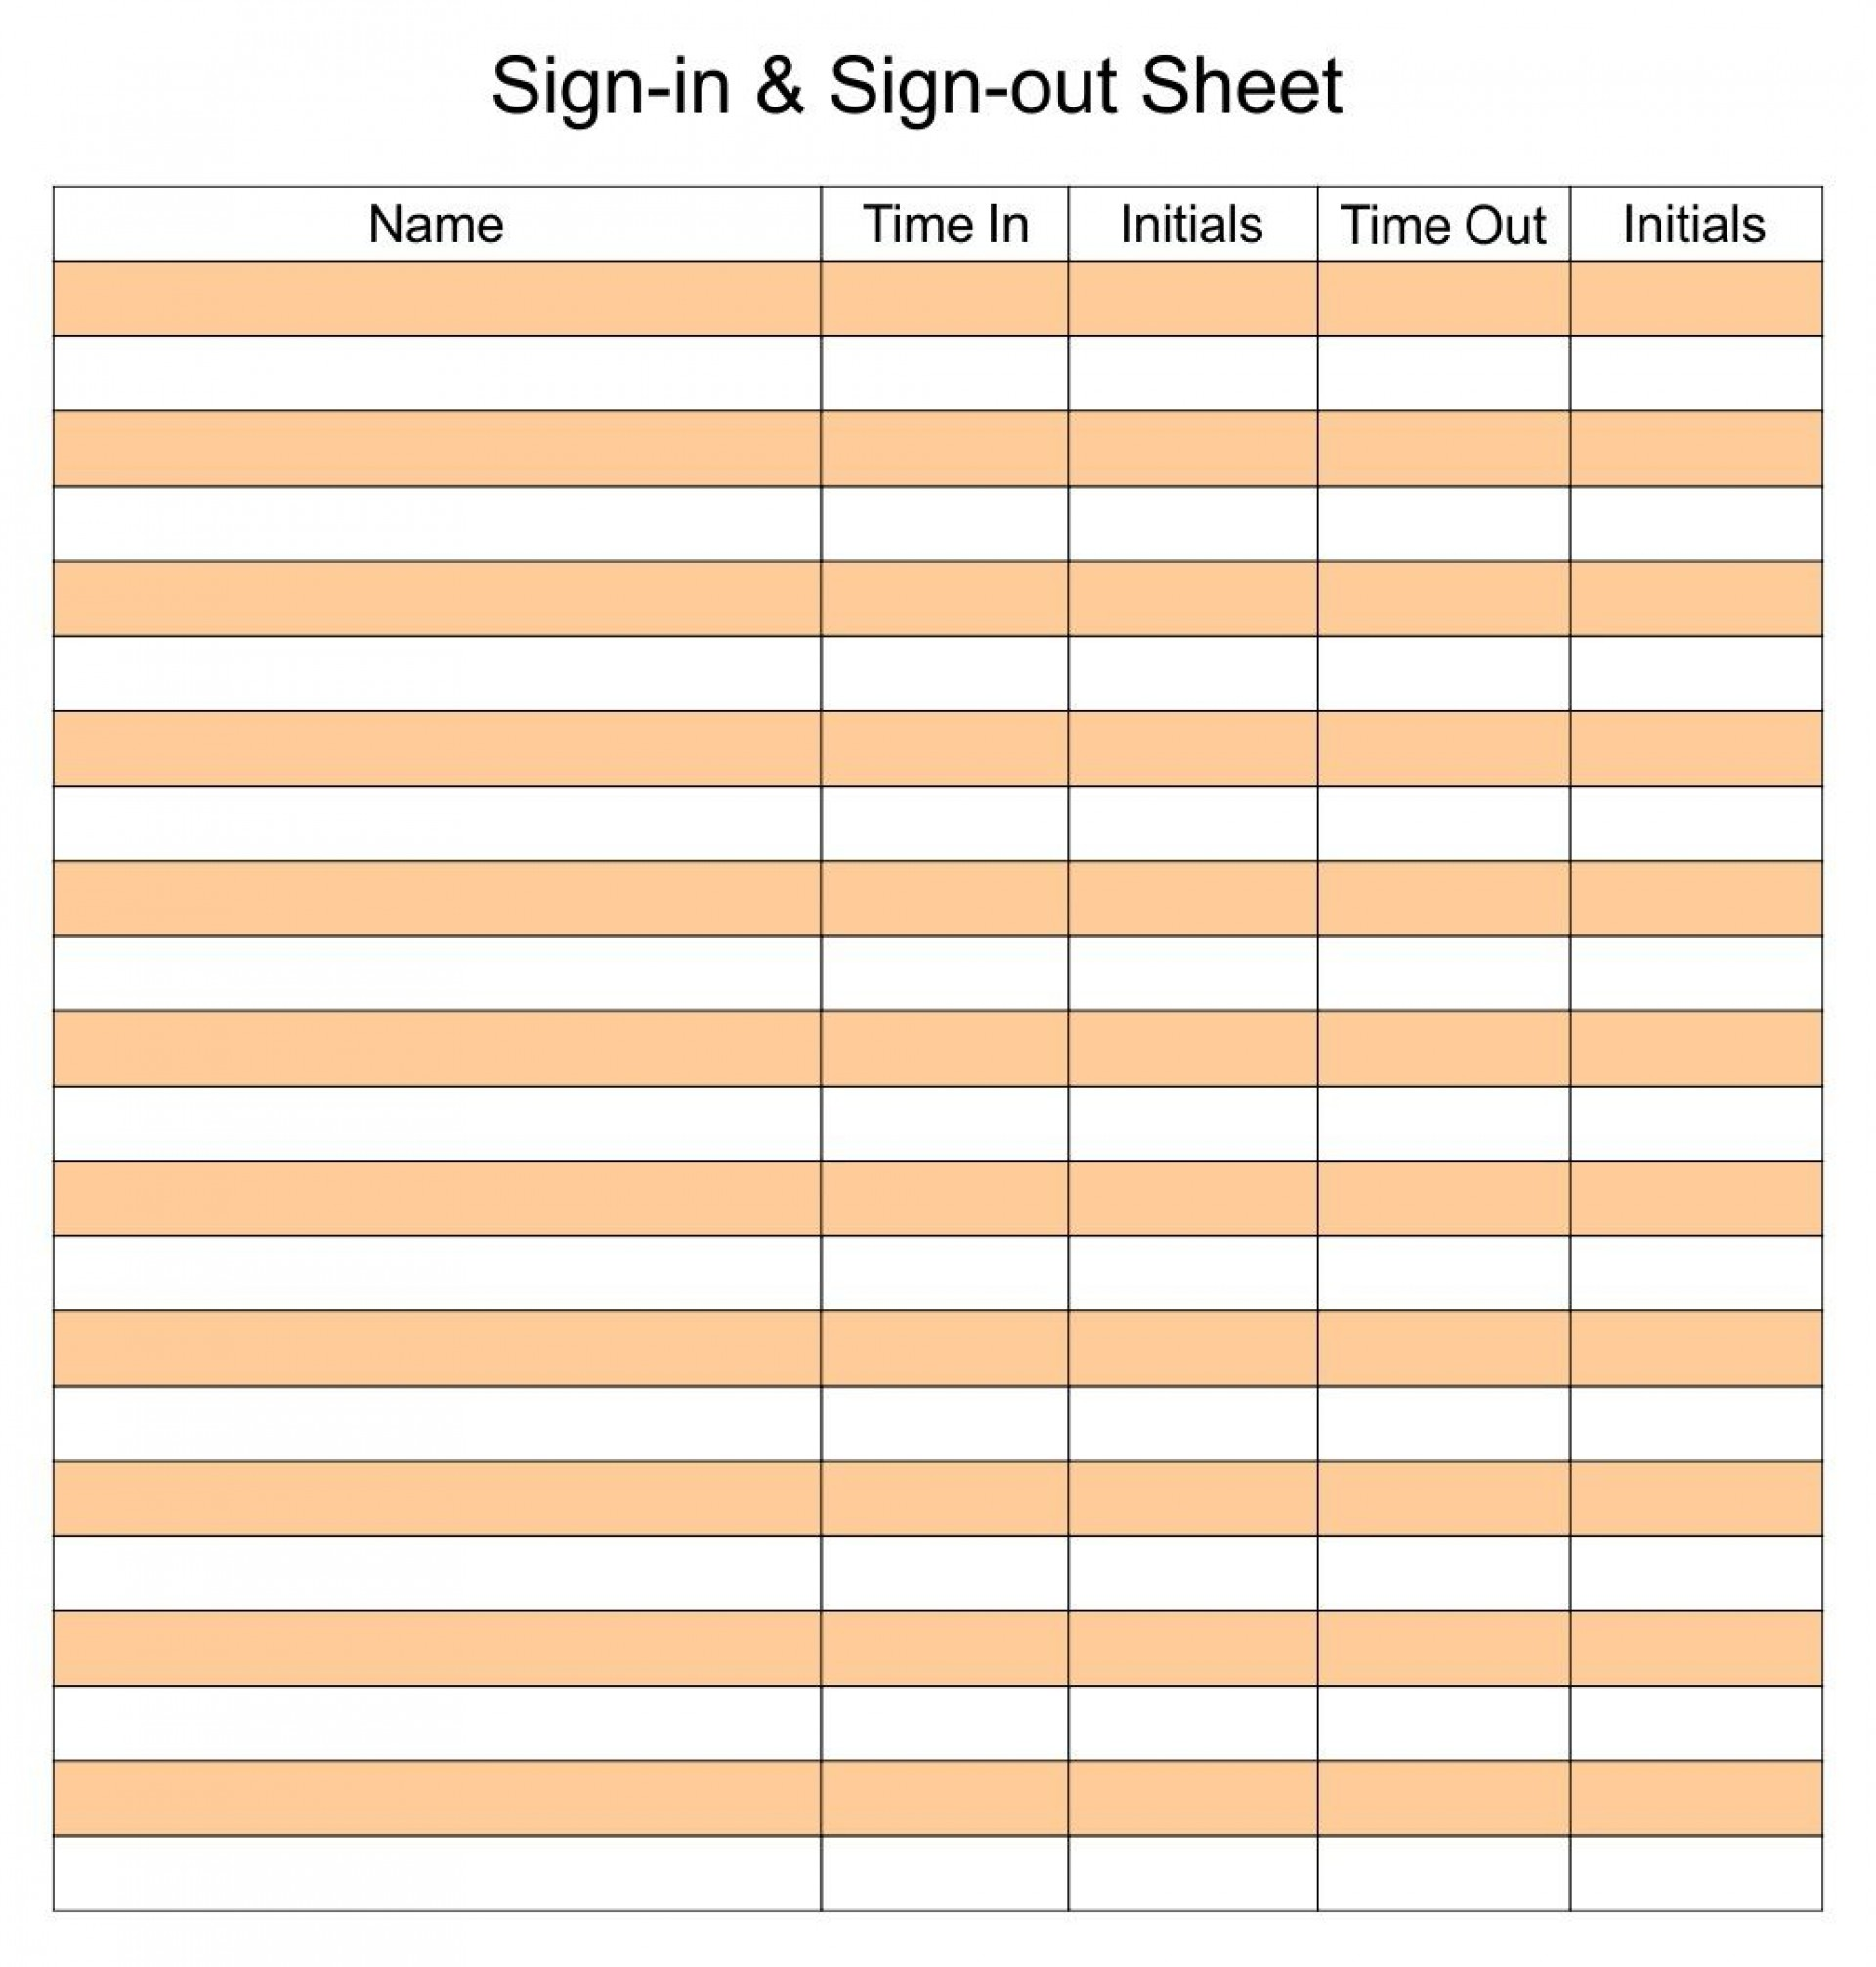 006 Archaicawful Sign In Sheet Template Excel Download Highest Quality 1920